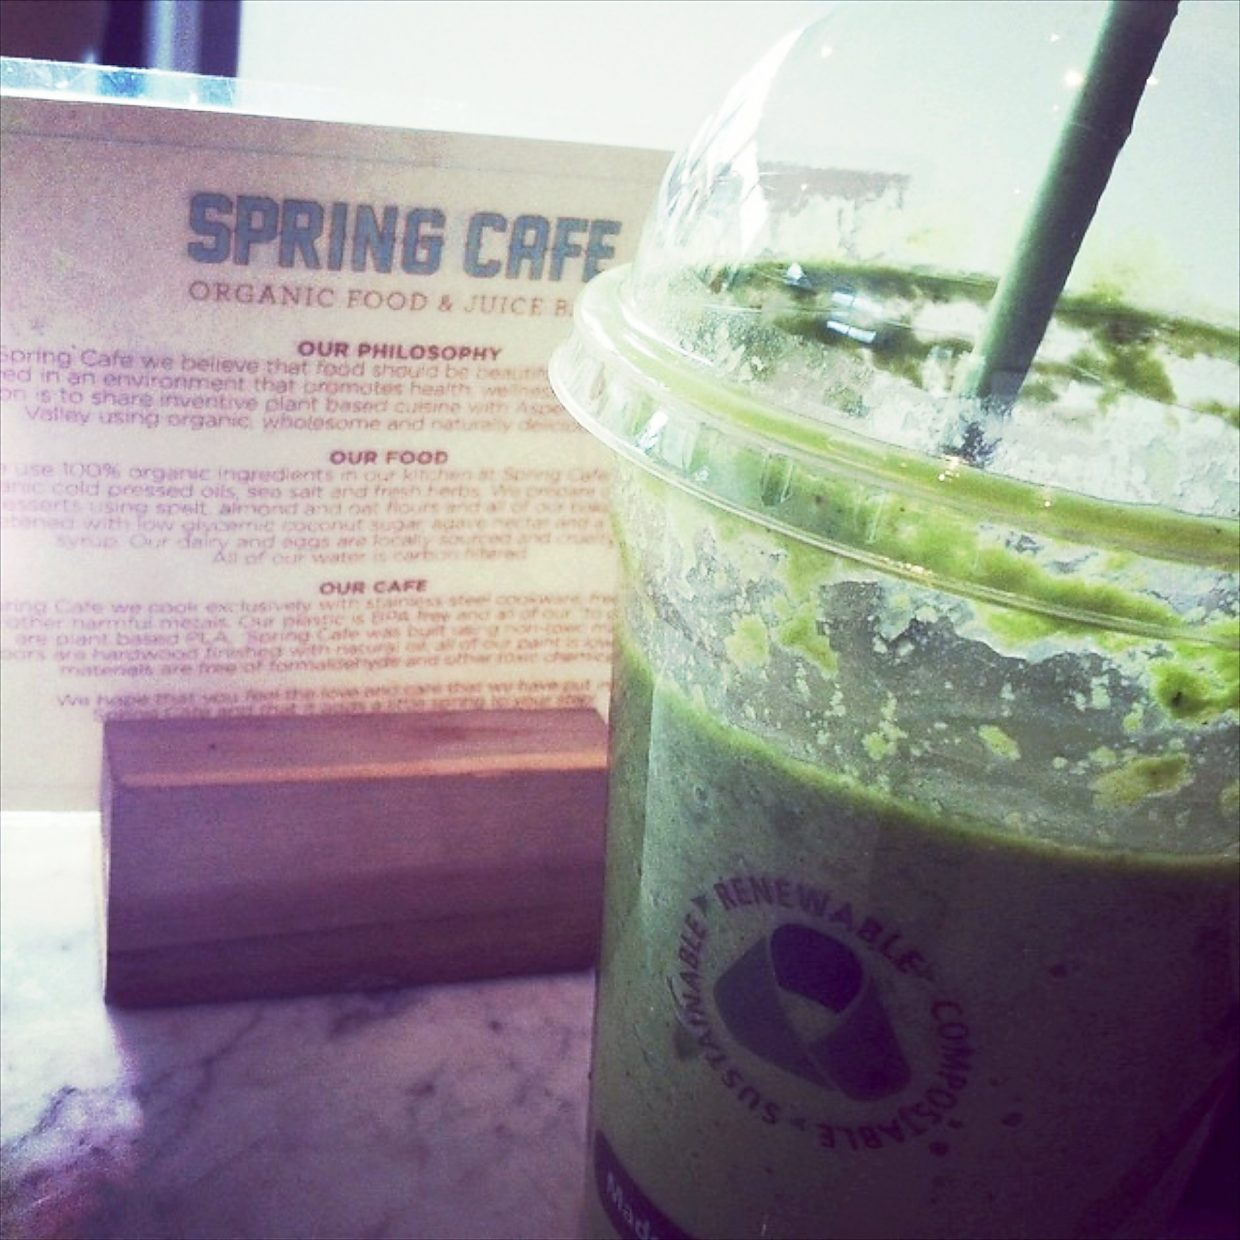 Spring Cafe is a natural organic cafe and juice bar. Try the Spring Shake, made with kale, avocado, dates, almond butter, fresh coconut and almond milk.